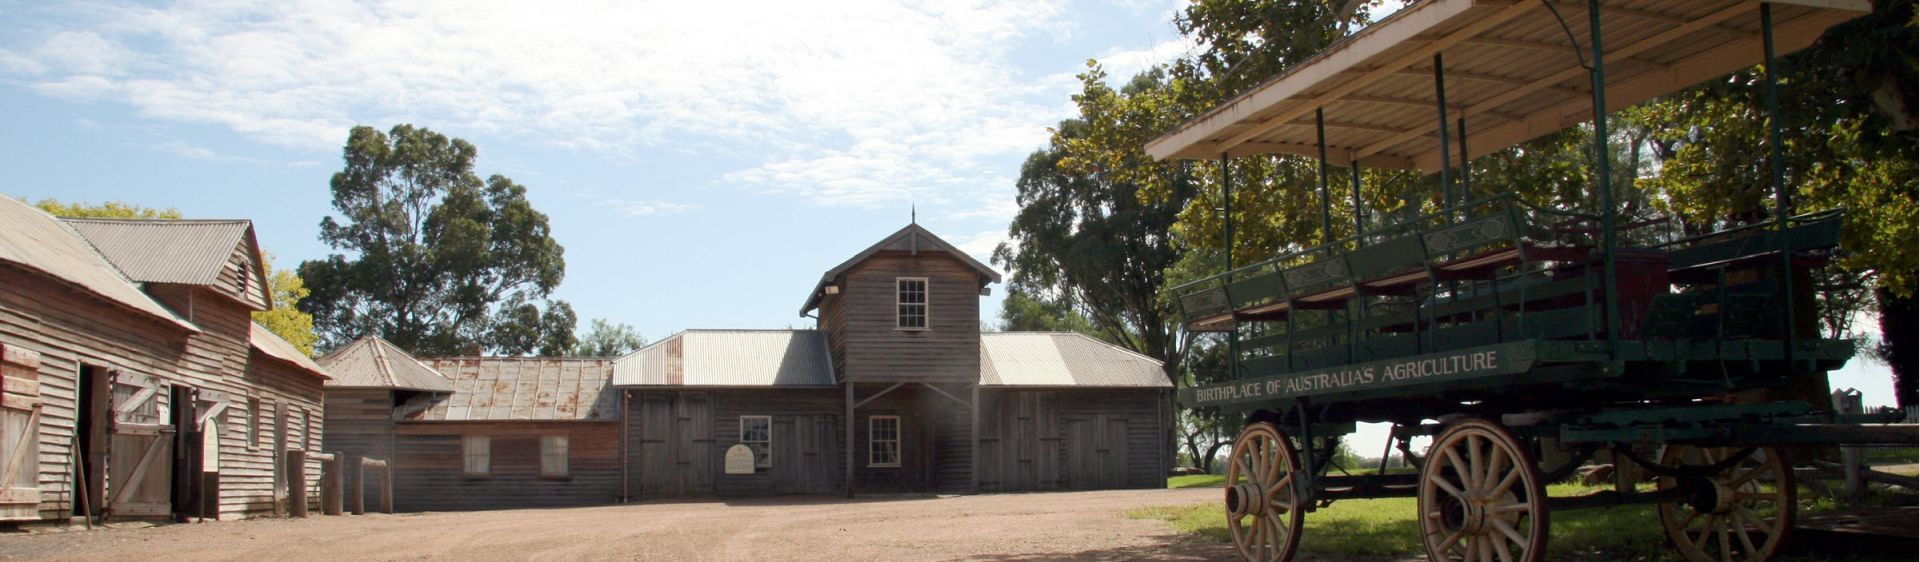 Farm houses at Belgenny Farm, Camden